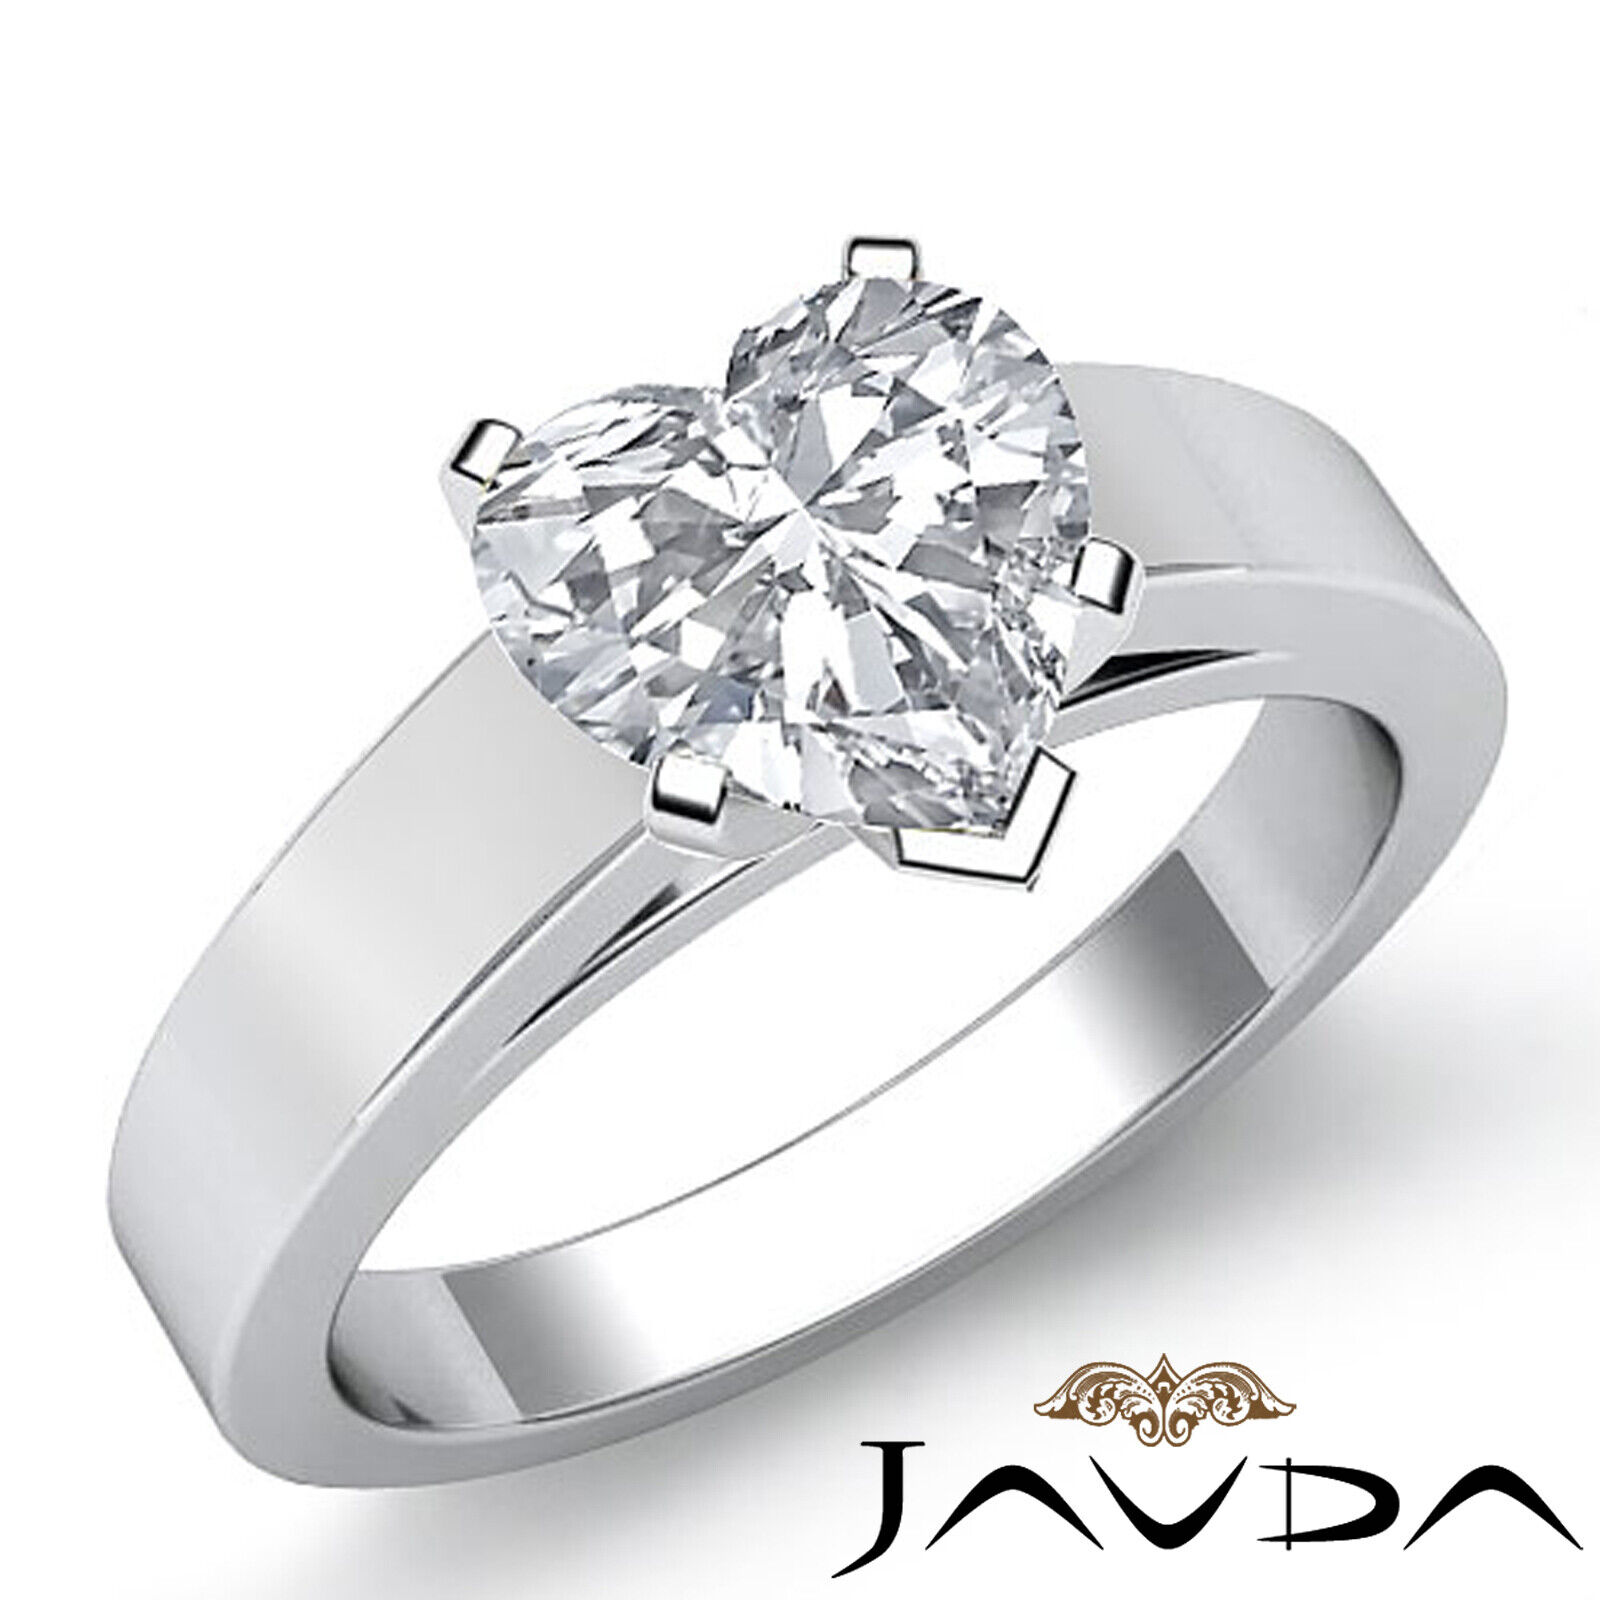 4.5mm Heart Diamond cathedral Solitaire Engagement GIA G SI1 Gold Ring 0.70 ct.